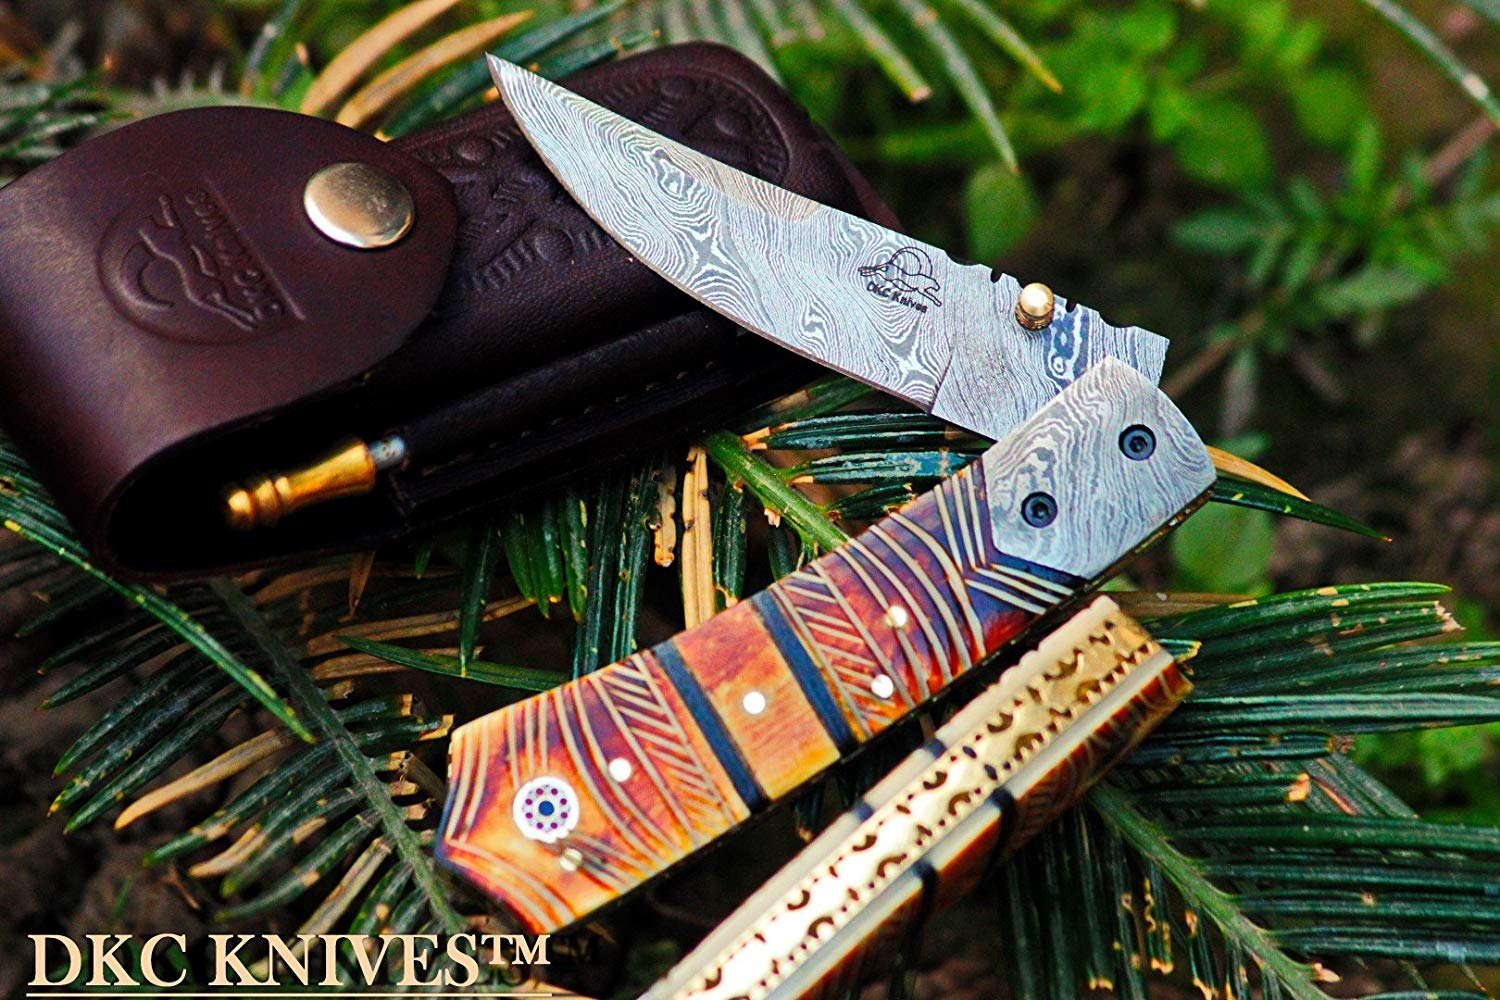 DKC-136 Chief Damascus Steel Folding Pocket Knife